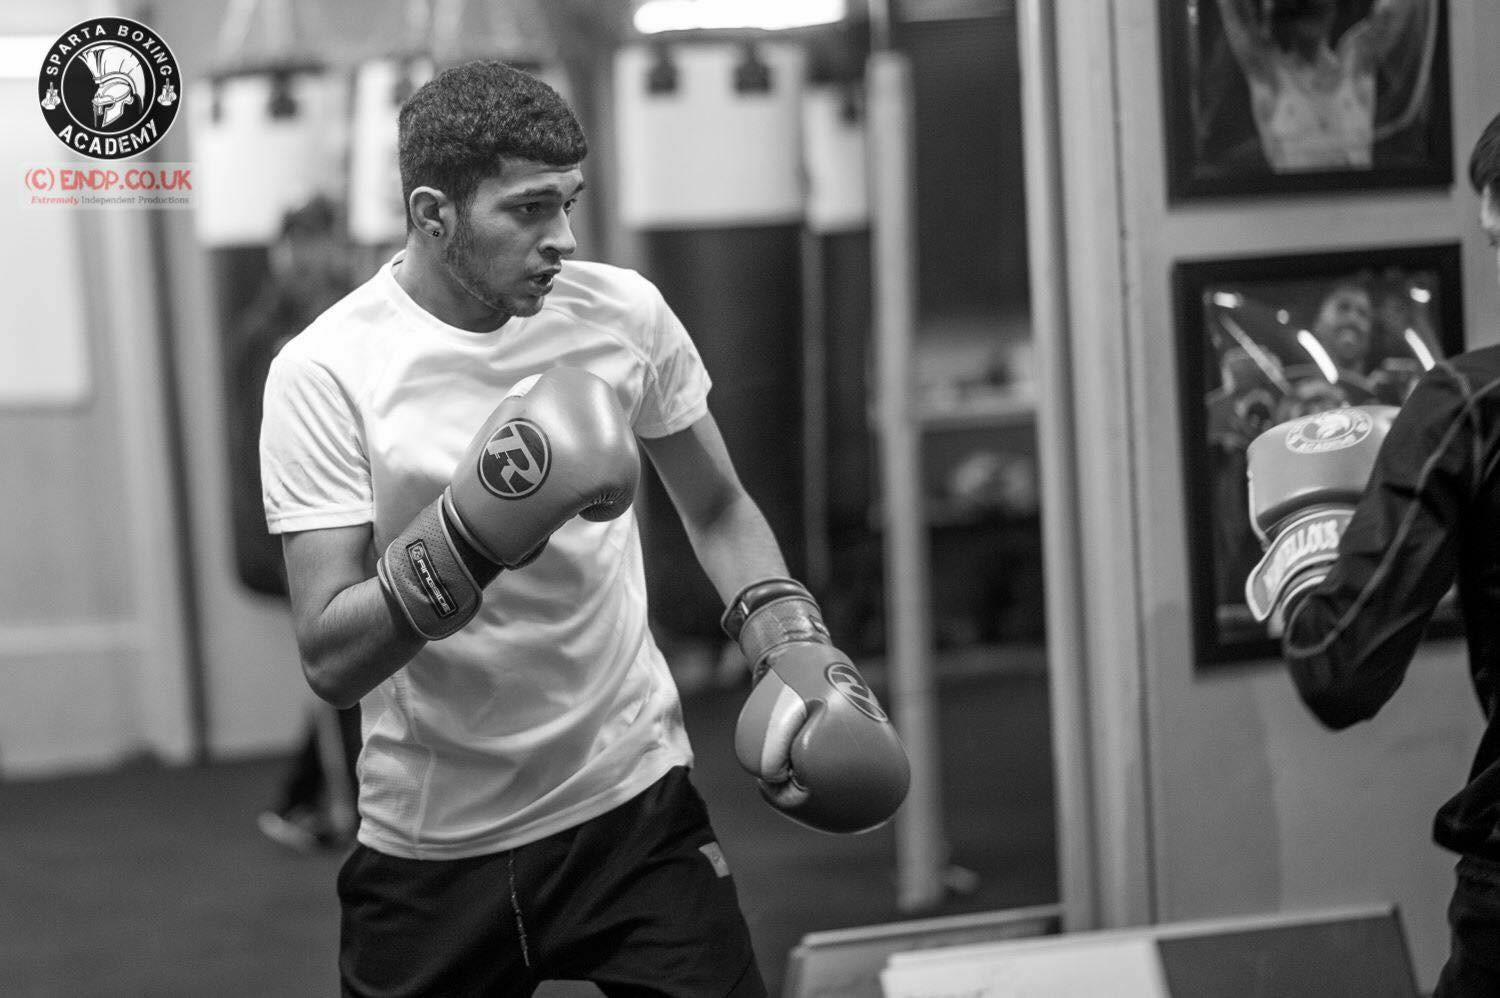 Balaal Waheed completes his modern apprenticeship with Sparta Boxing Academy and Falkirk Council's Employment and Training Unit.